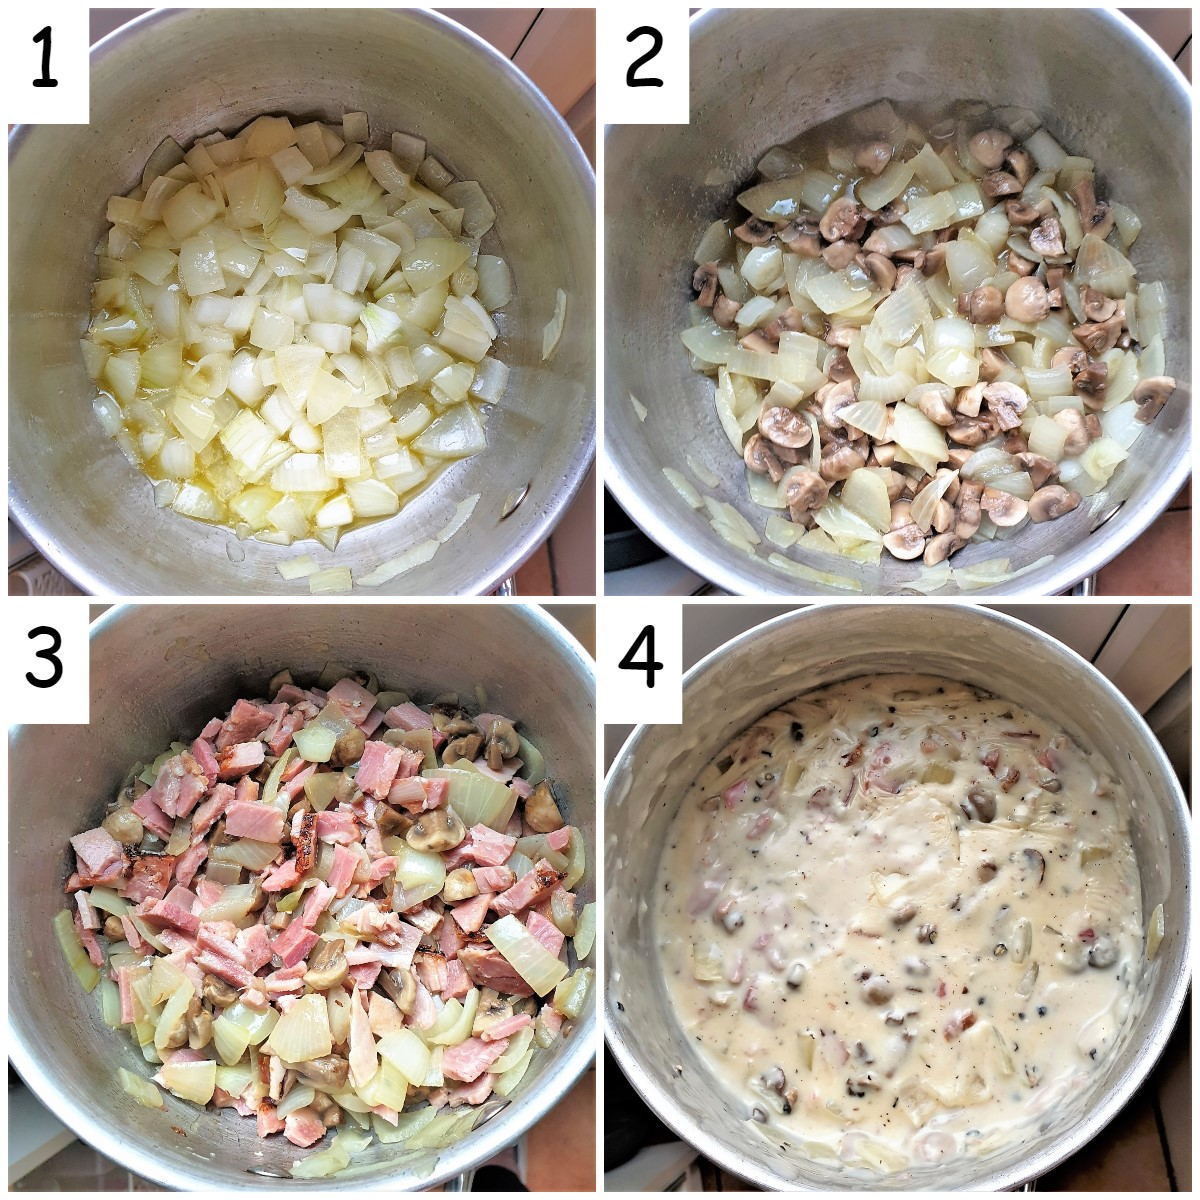 Collage of 4 images showing steps for making ham and mushroom tagliatelle.